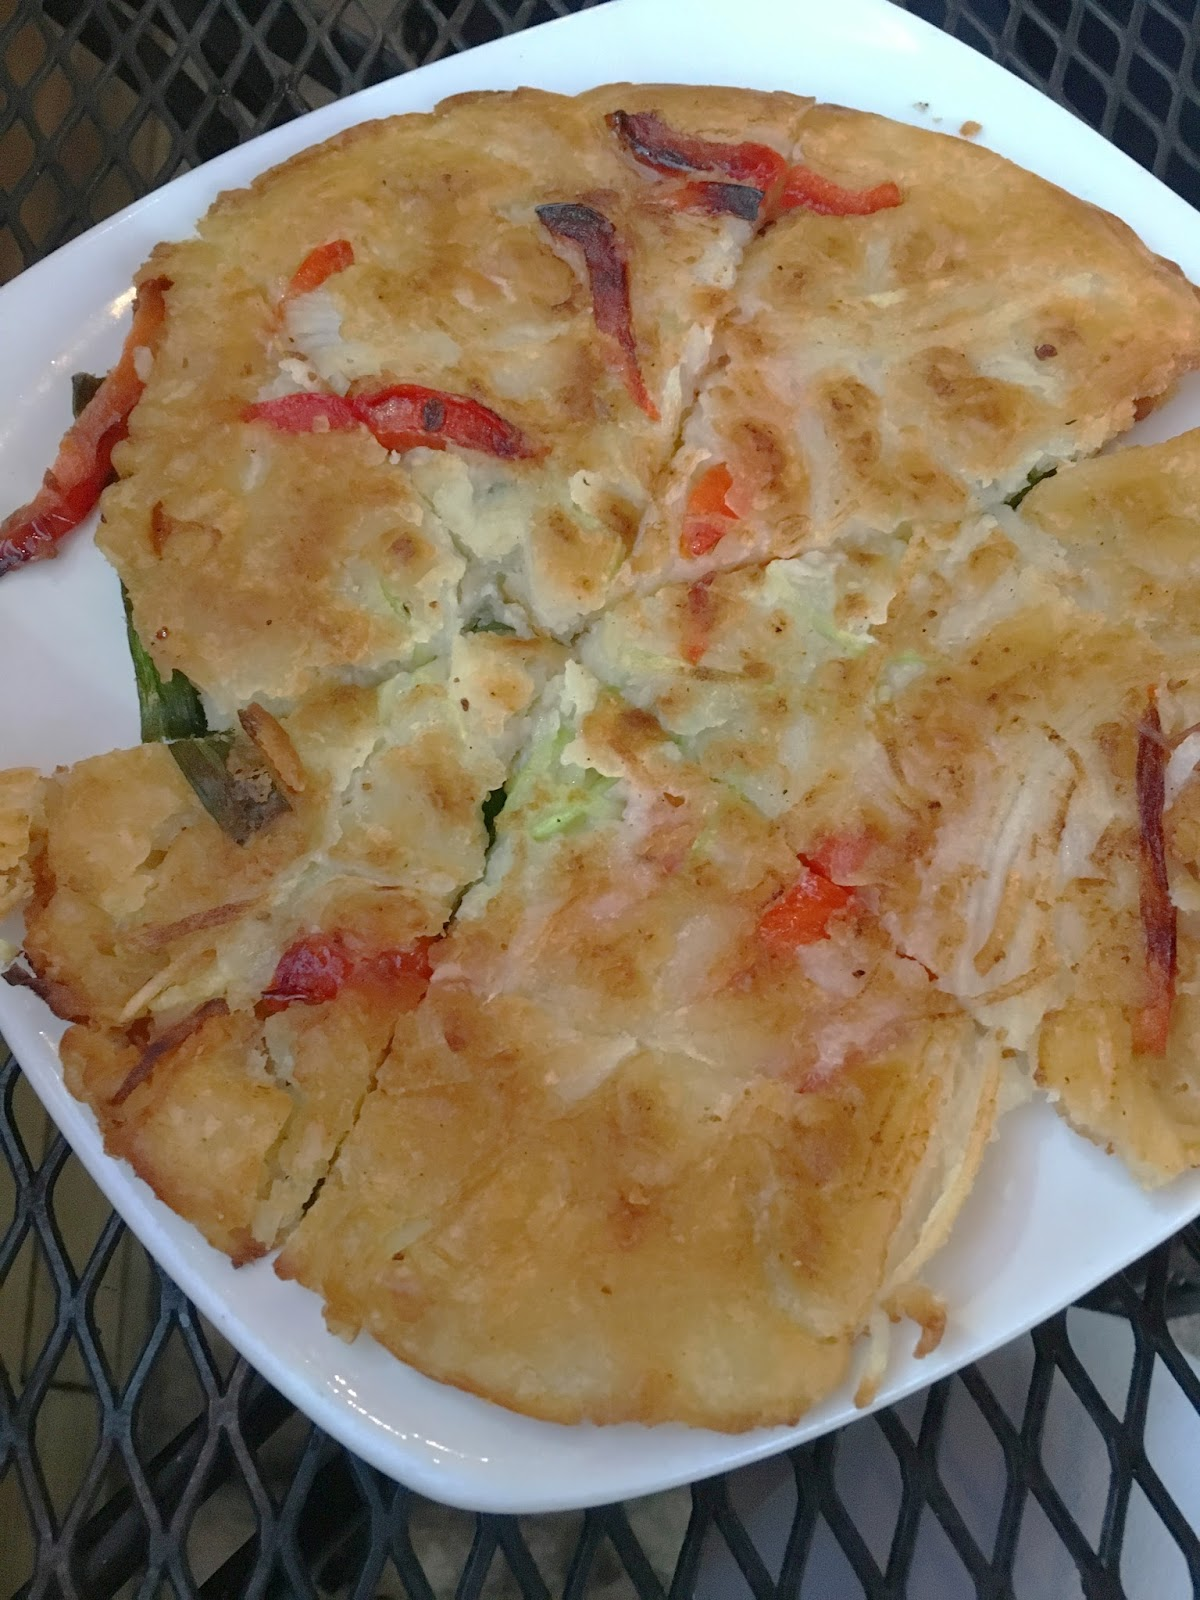 pajeon at Republic Diner + Sojubang, a Korean restaurant in Houston, Texas